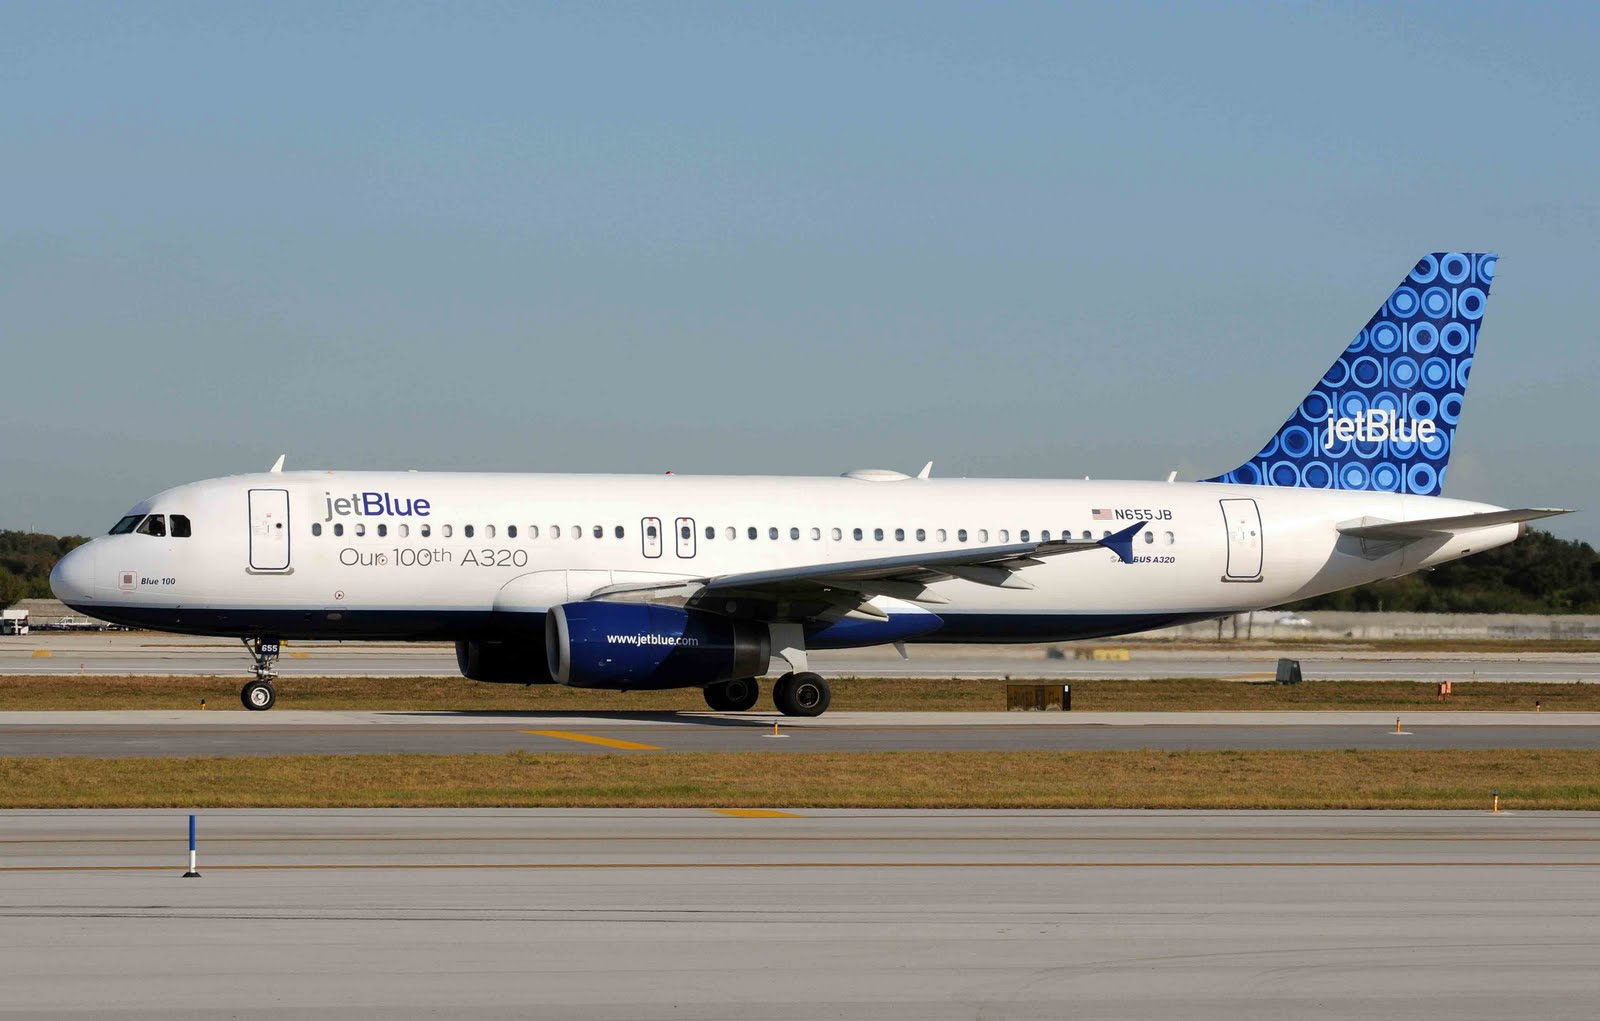 jet blue airways essay Open document below is an essay on jet blue airways from anti essays, your source for research papers, essays, and term paper examples.